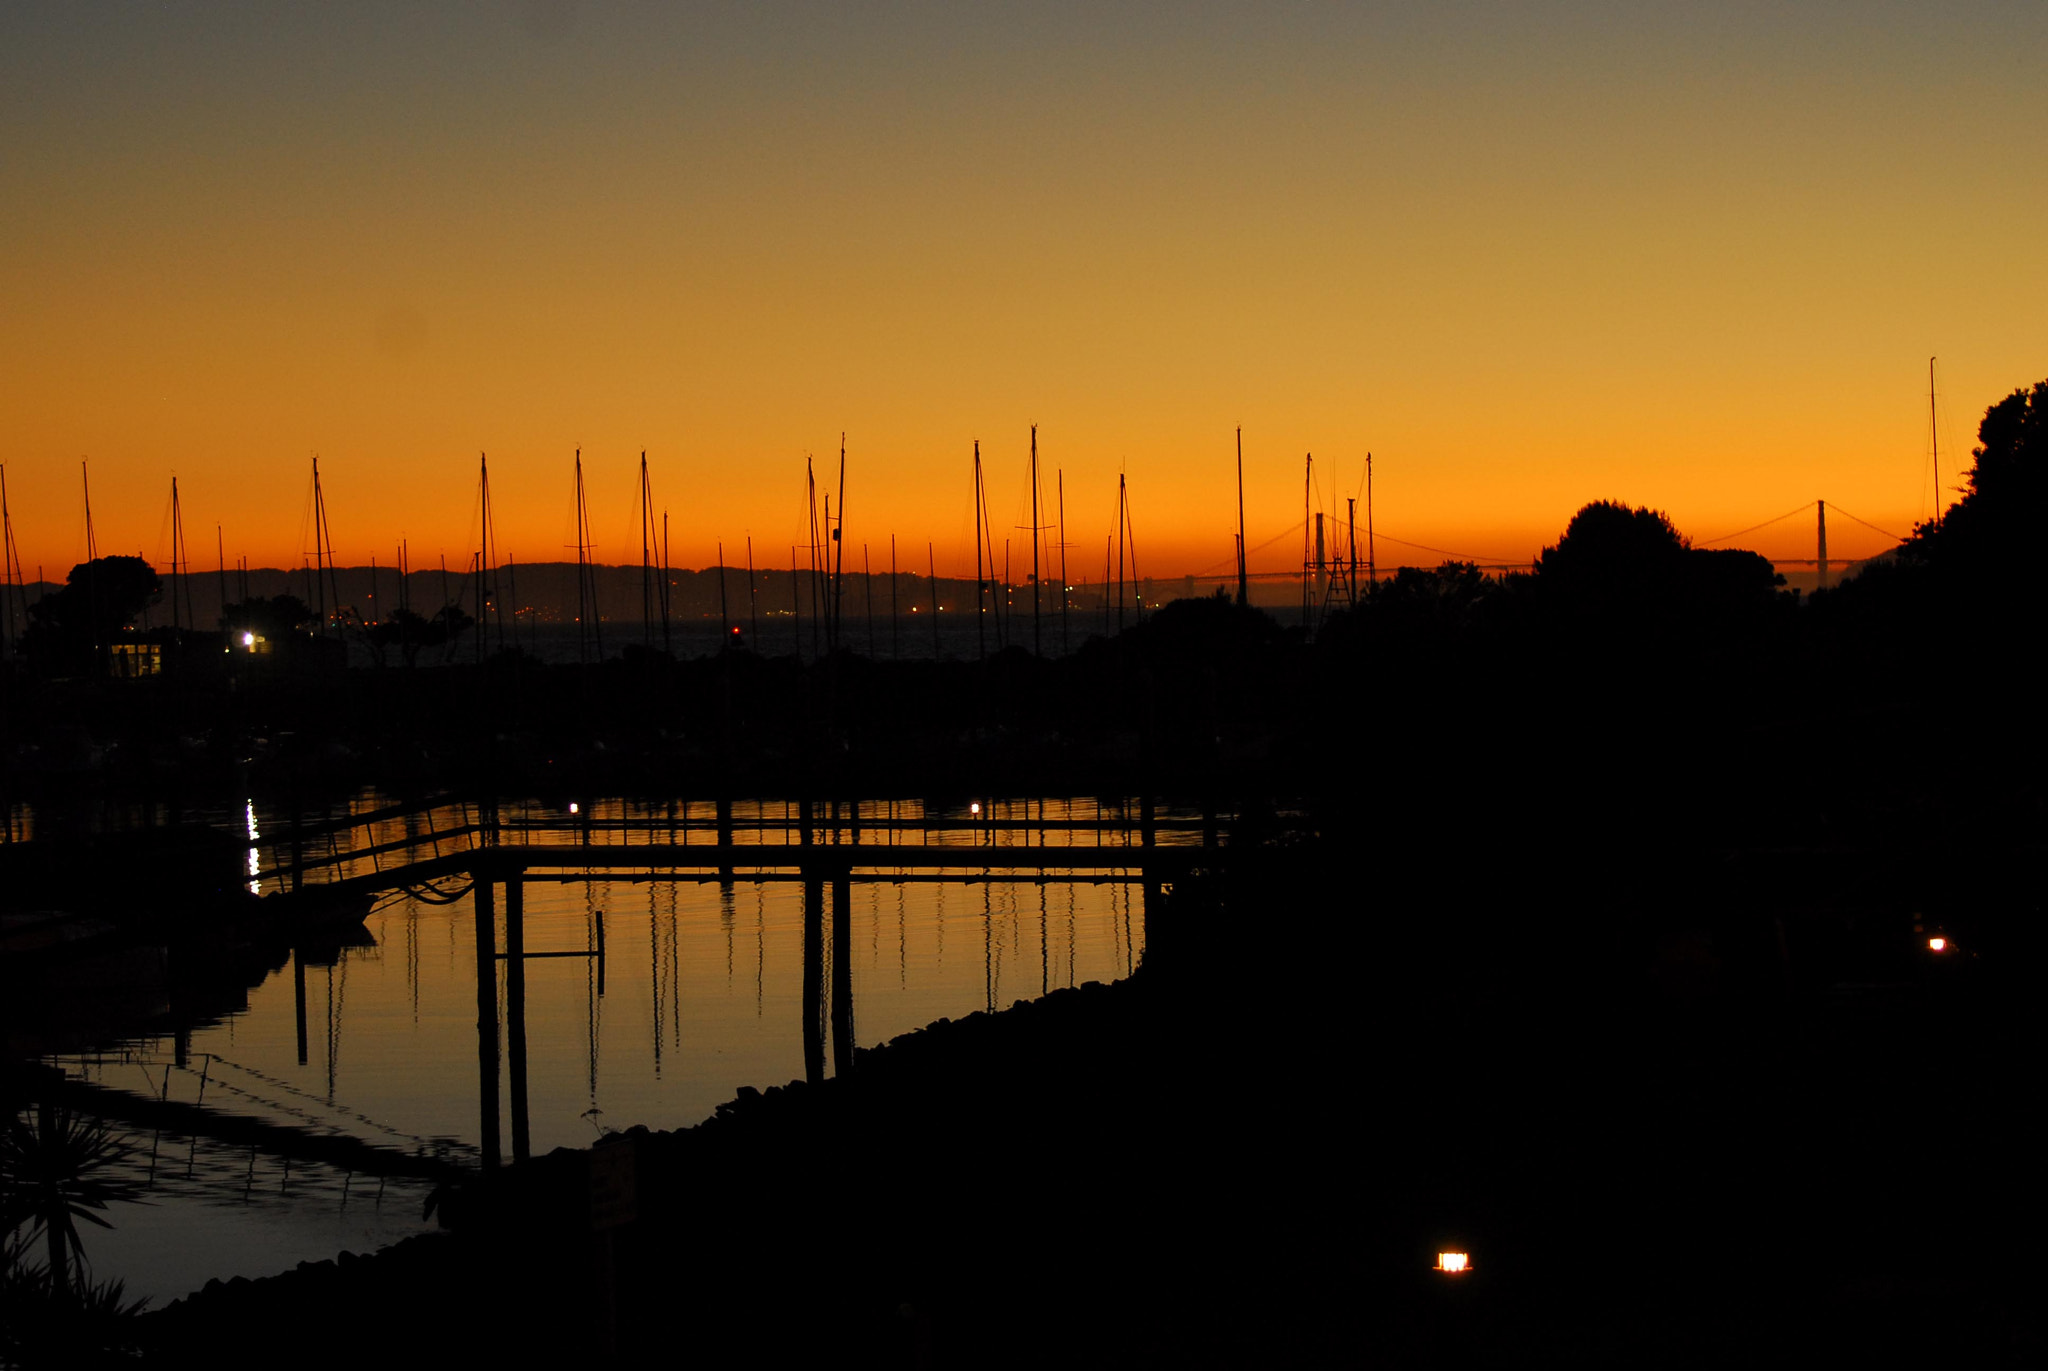 Photograph Berkeley Marina at Sunset - Golden Gate Bridge in background by Guy Prince on 500px